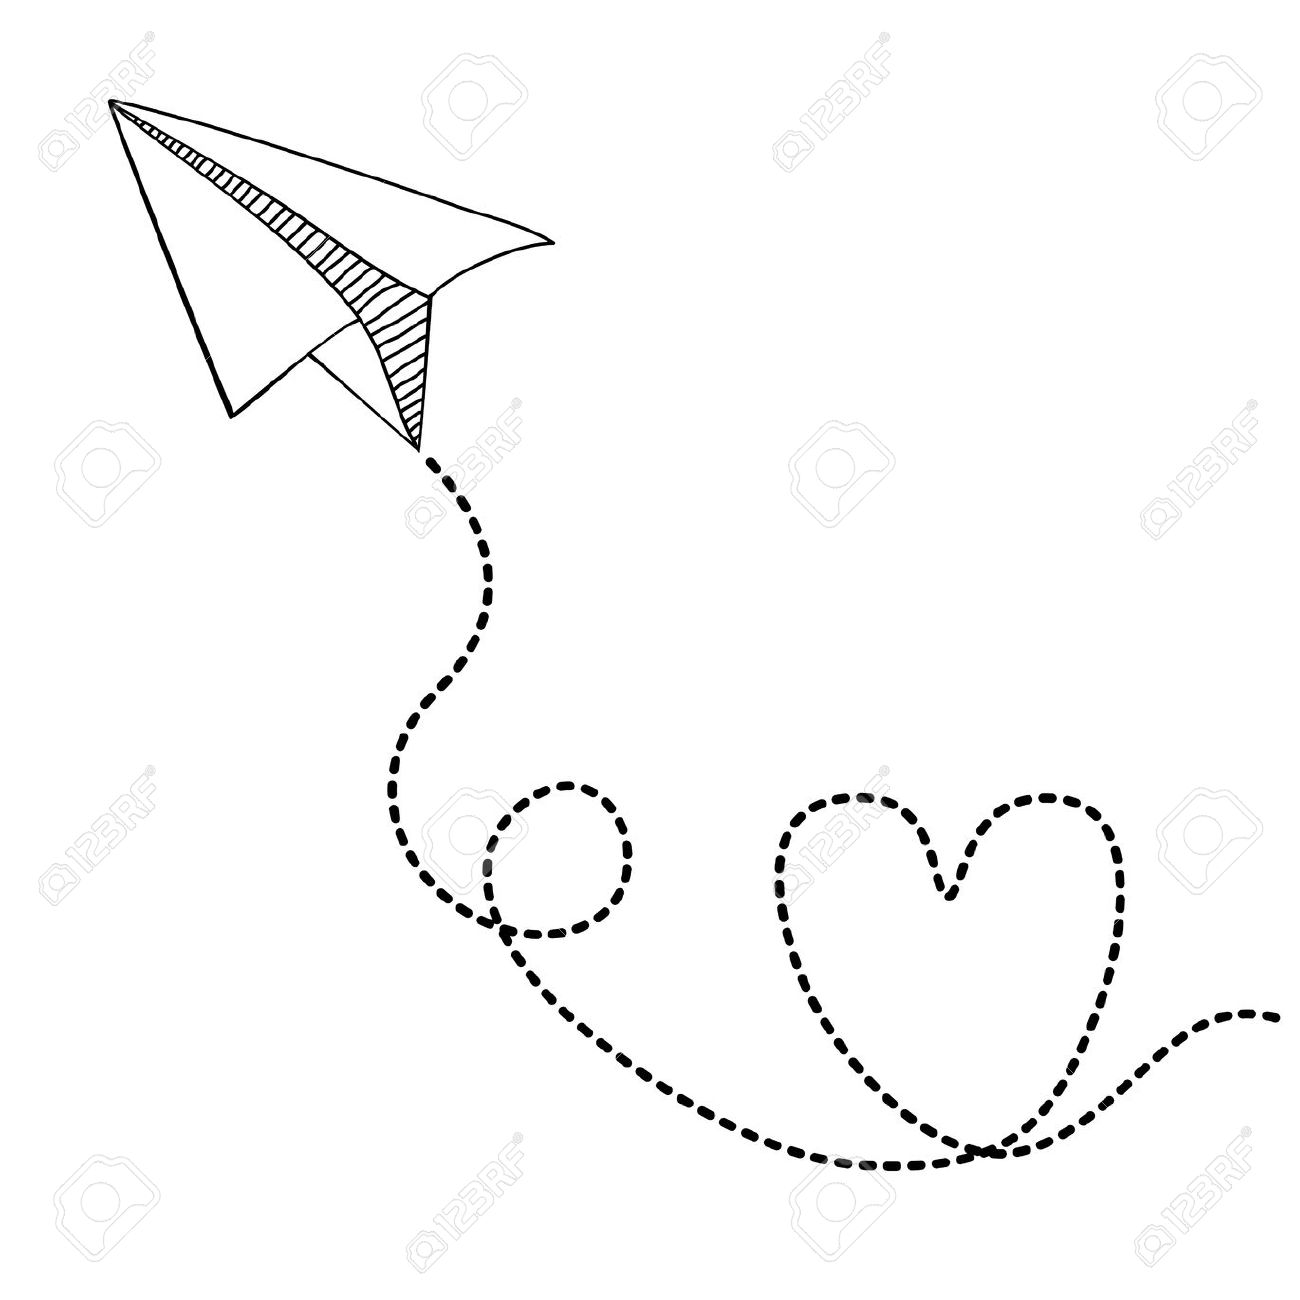 Drawn airplane black and white Tumblr Motto Plane drawings Plane